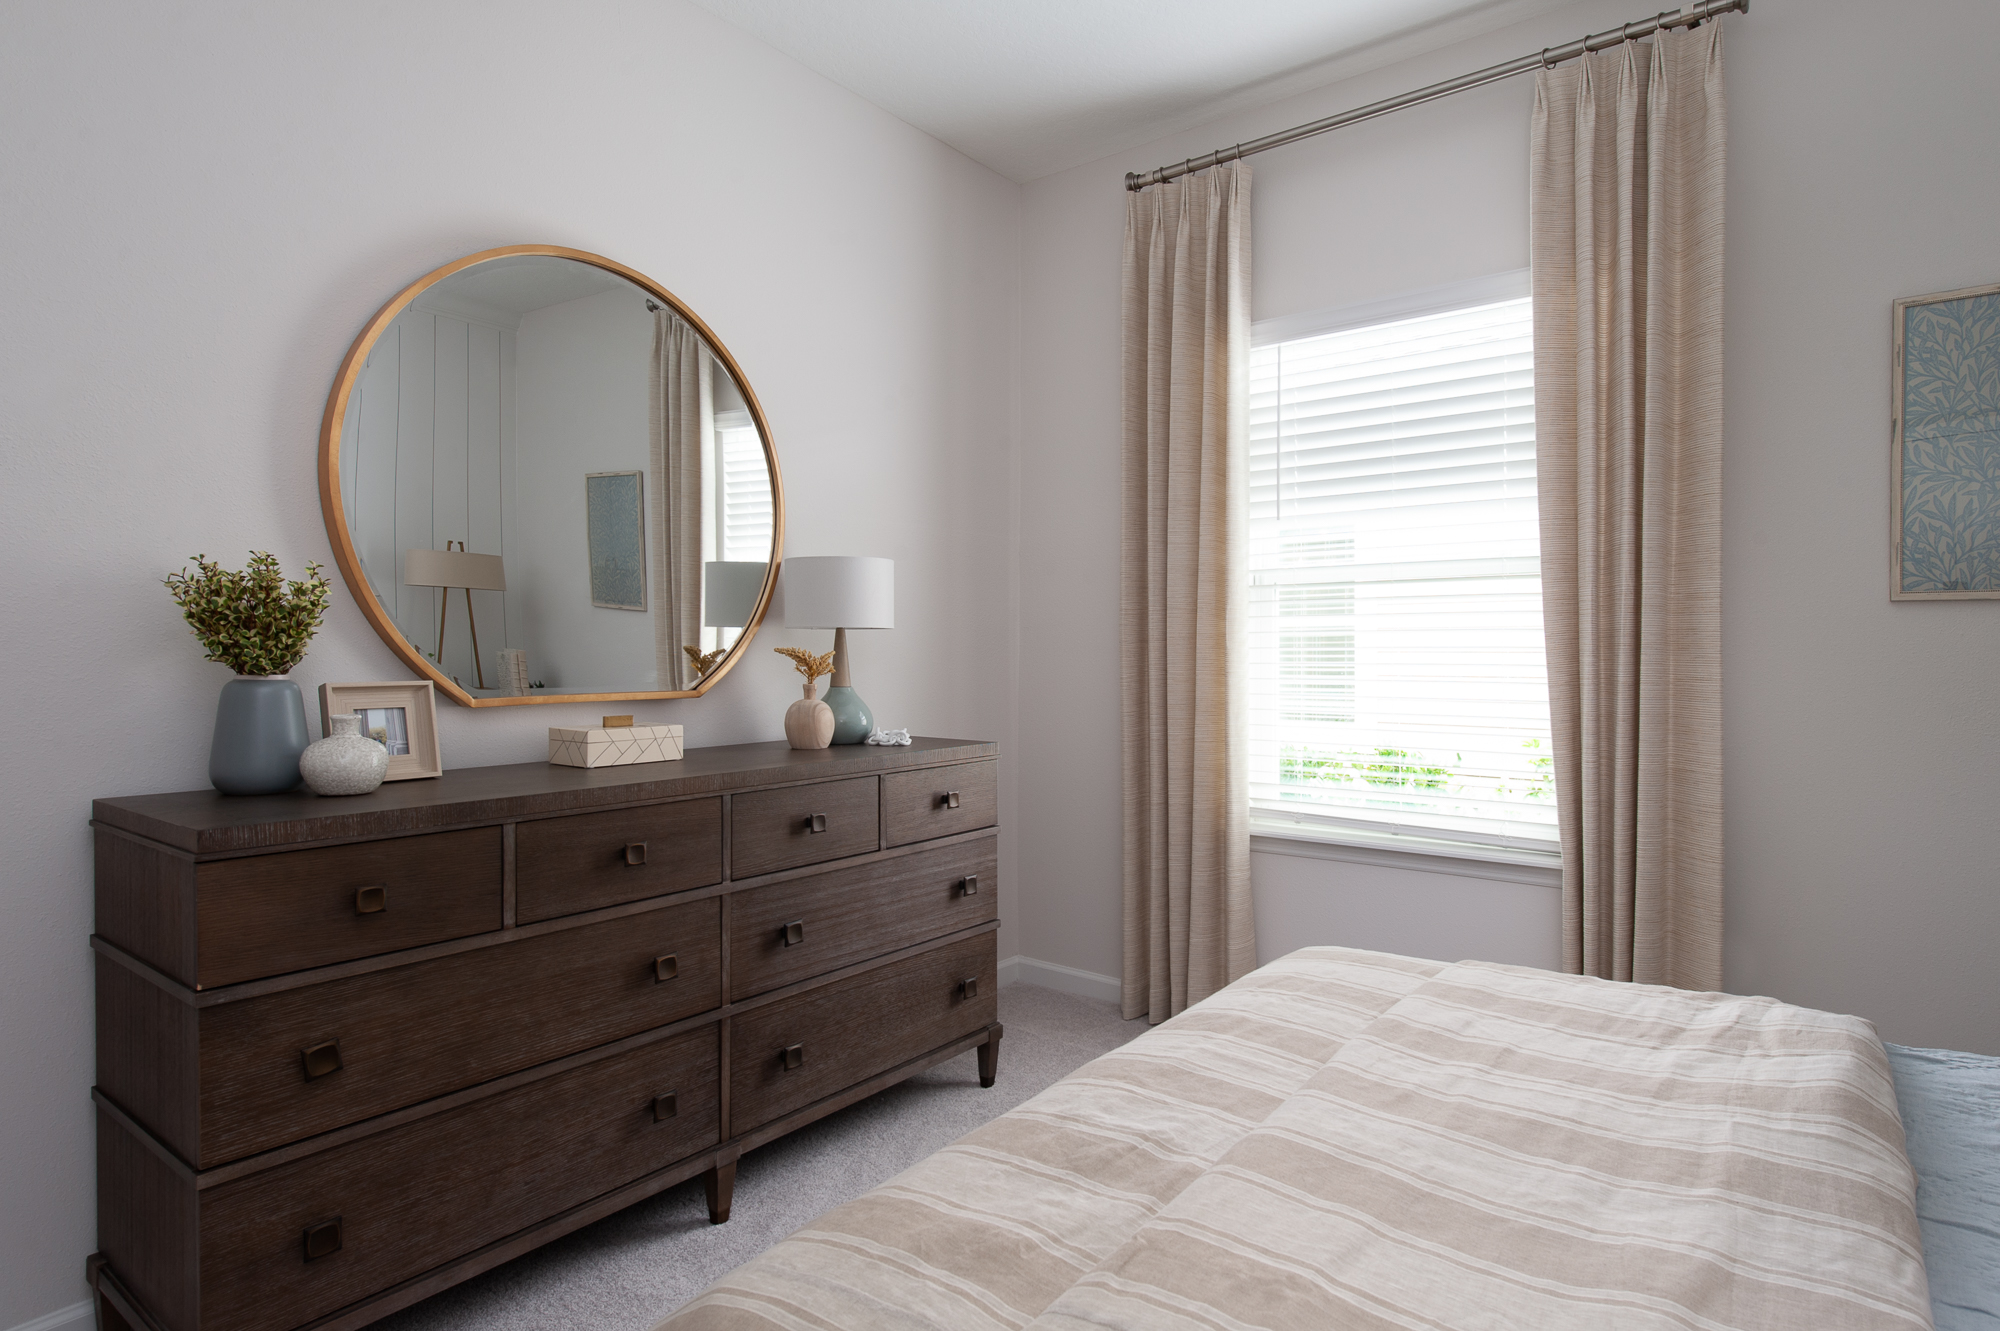 Micamy Design Studio_Model Home_Interior Design_Orchard Cove_Modern Coastal_Universal_Uttermost_Guest Suite_Wendover.jpg